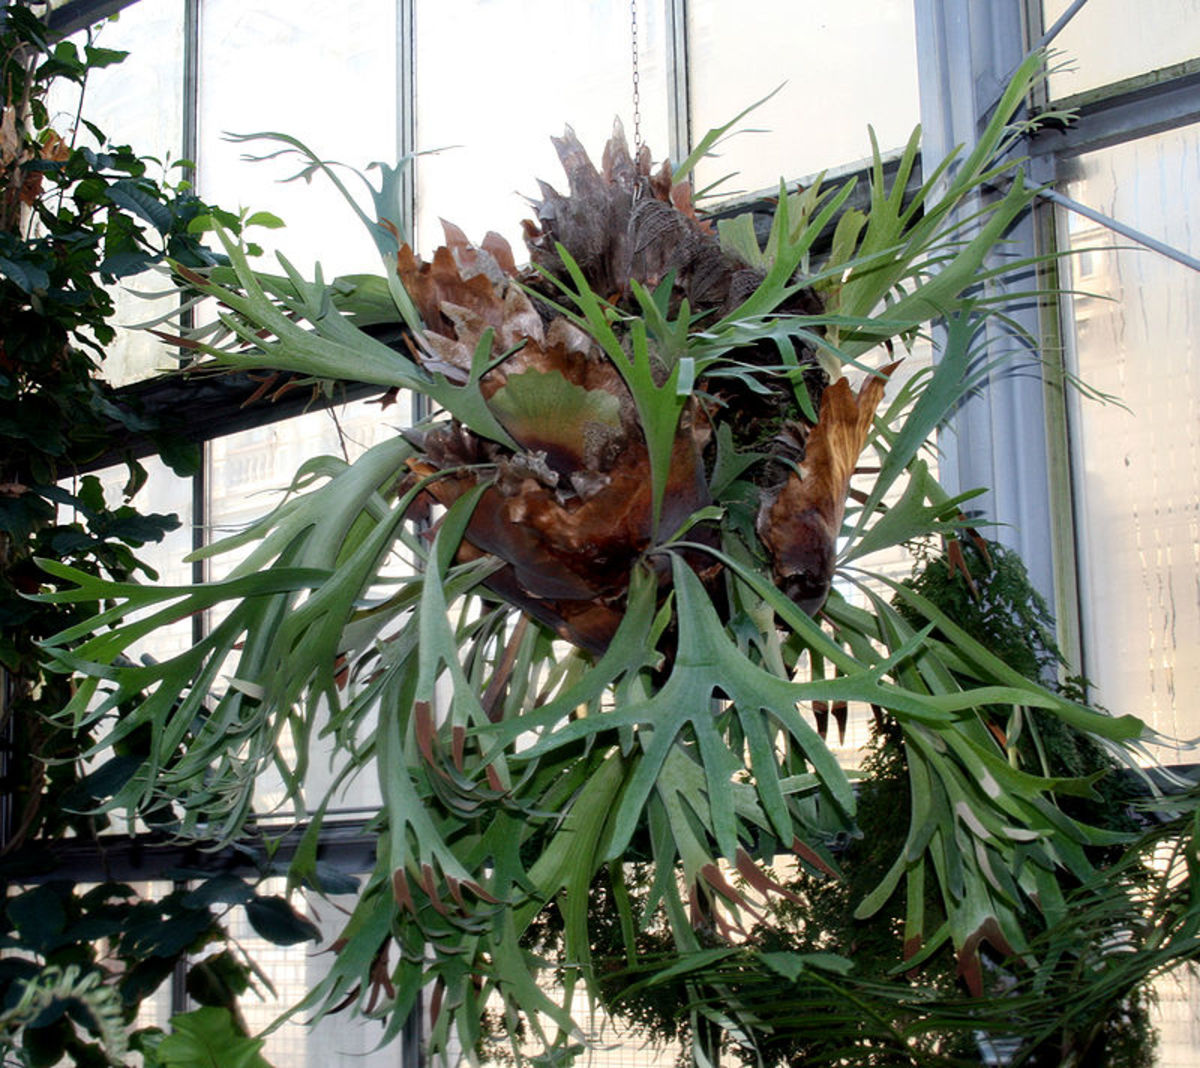 Staghorn ferns grown in wire hanging baskets develop pups which are new, young ferns all around the basket.